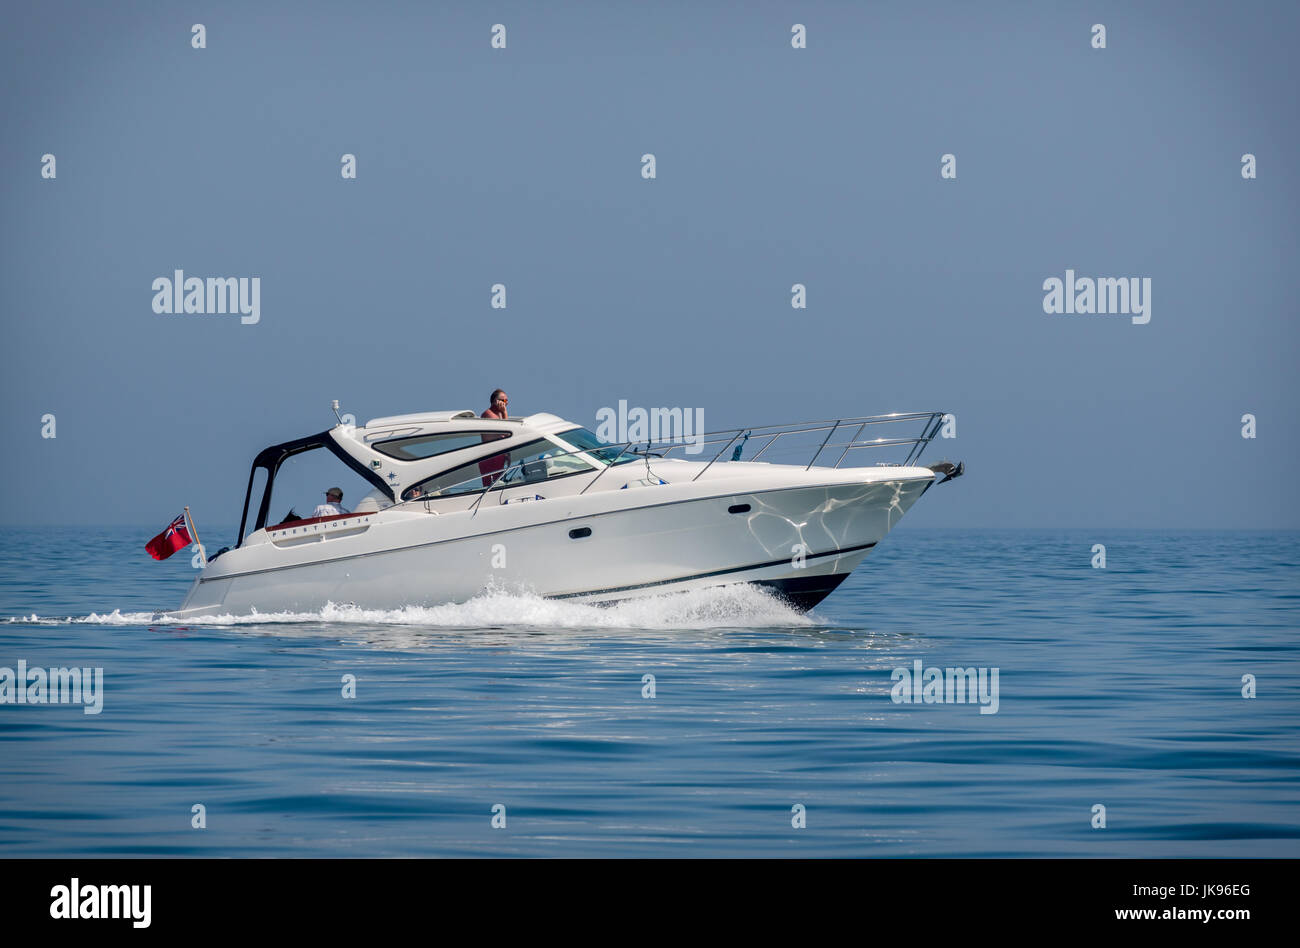 Jeanneau Prestige 34 motor yacht at speed on a sunny day - Stock Image